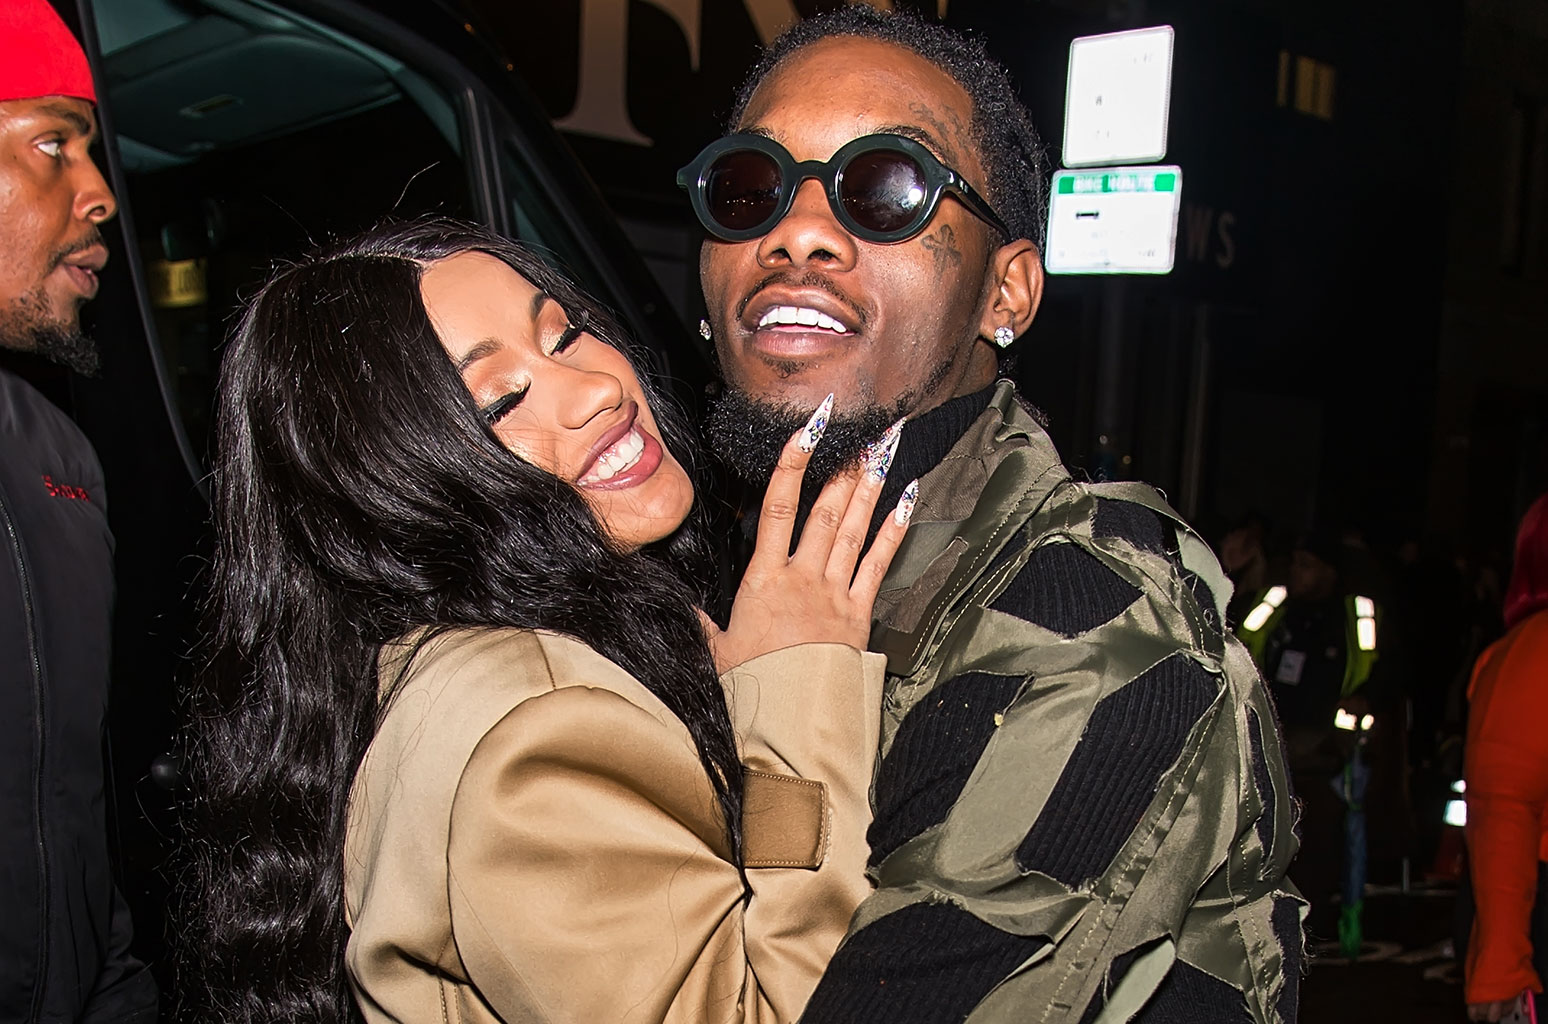 Cardi B And Offset Reunite And Go On Puerto Rico Vacation Together